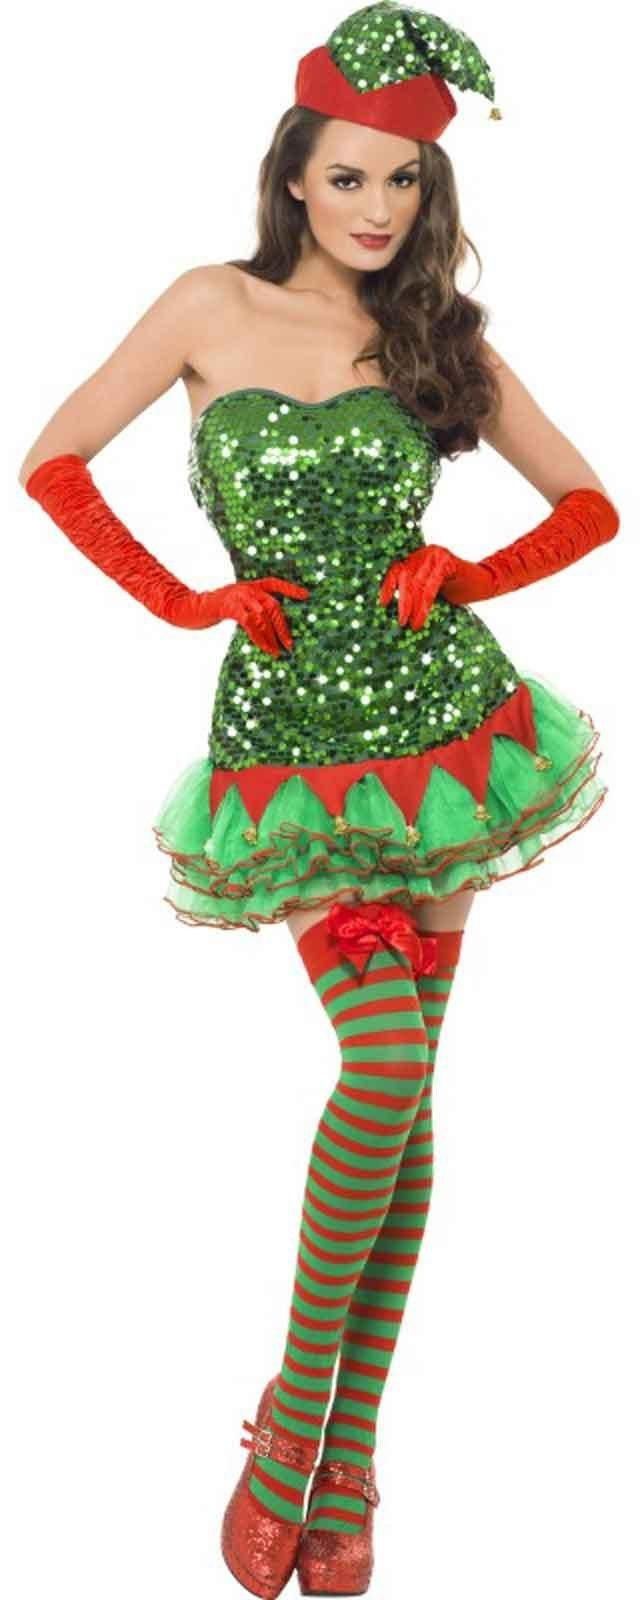 Santa Costumes, Elf Costumes, Christmas Costumes, Nativity Costumes Take this year's Halloween costume party honors by dressing the whole family in Christmas costumes. This sweet holiday idea is perfect for families with young children that might be frightened by scary Halloween costumes.